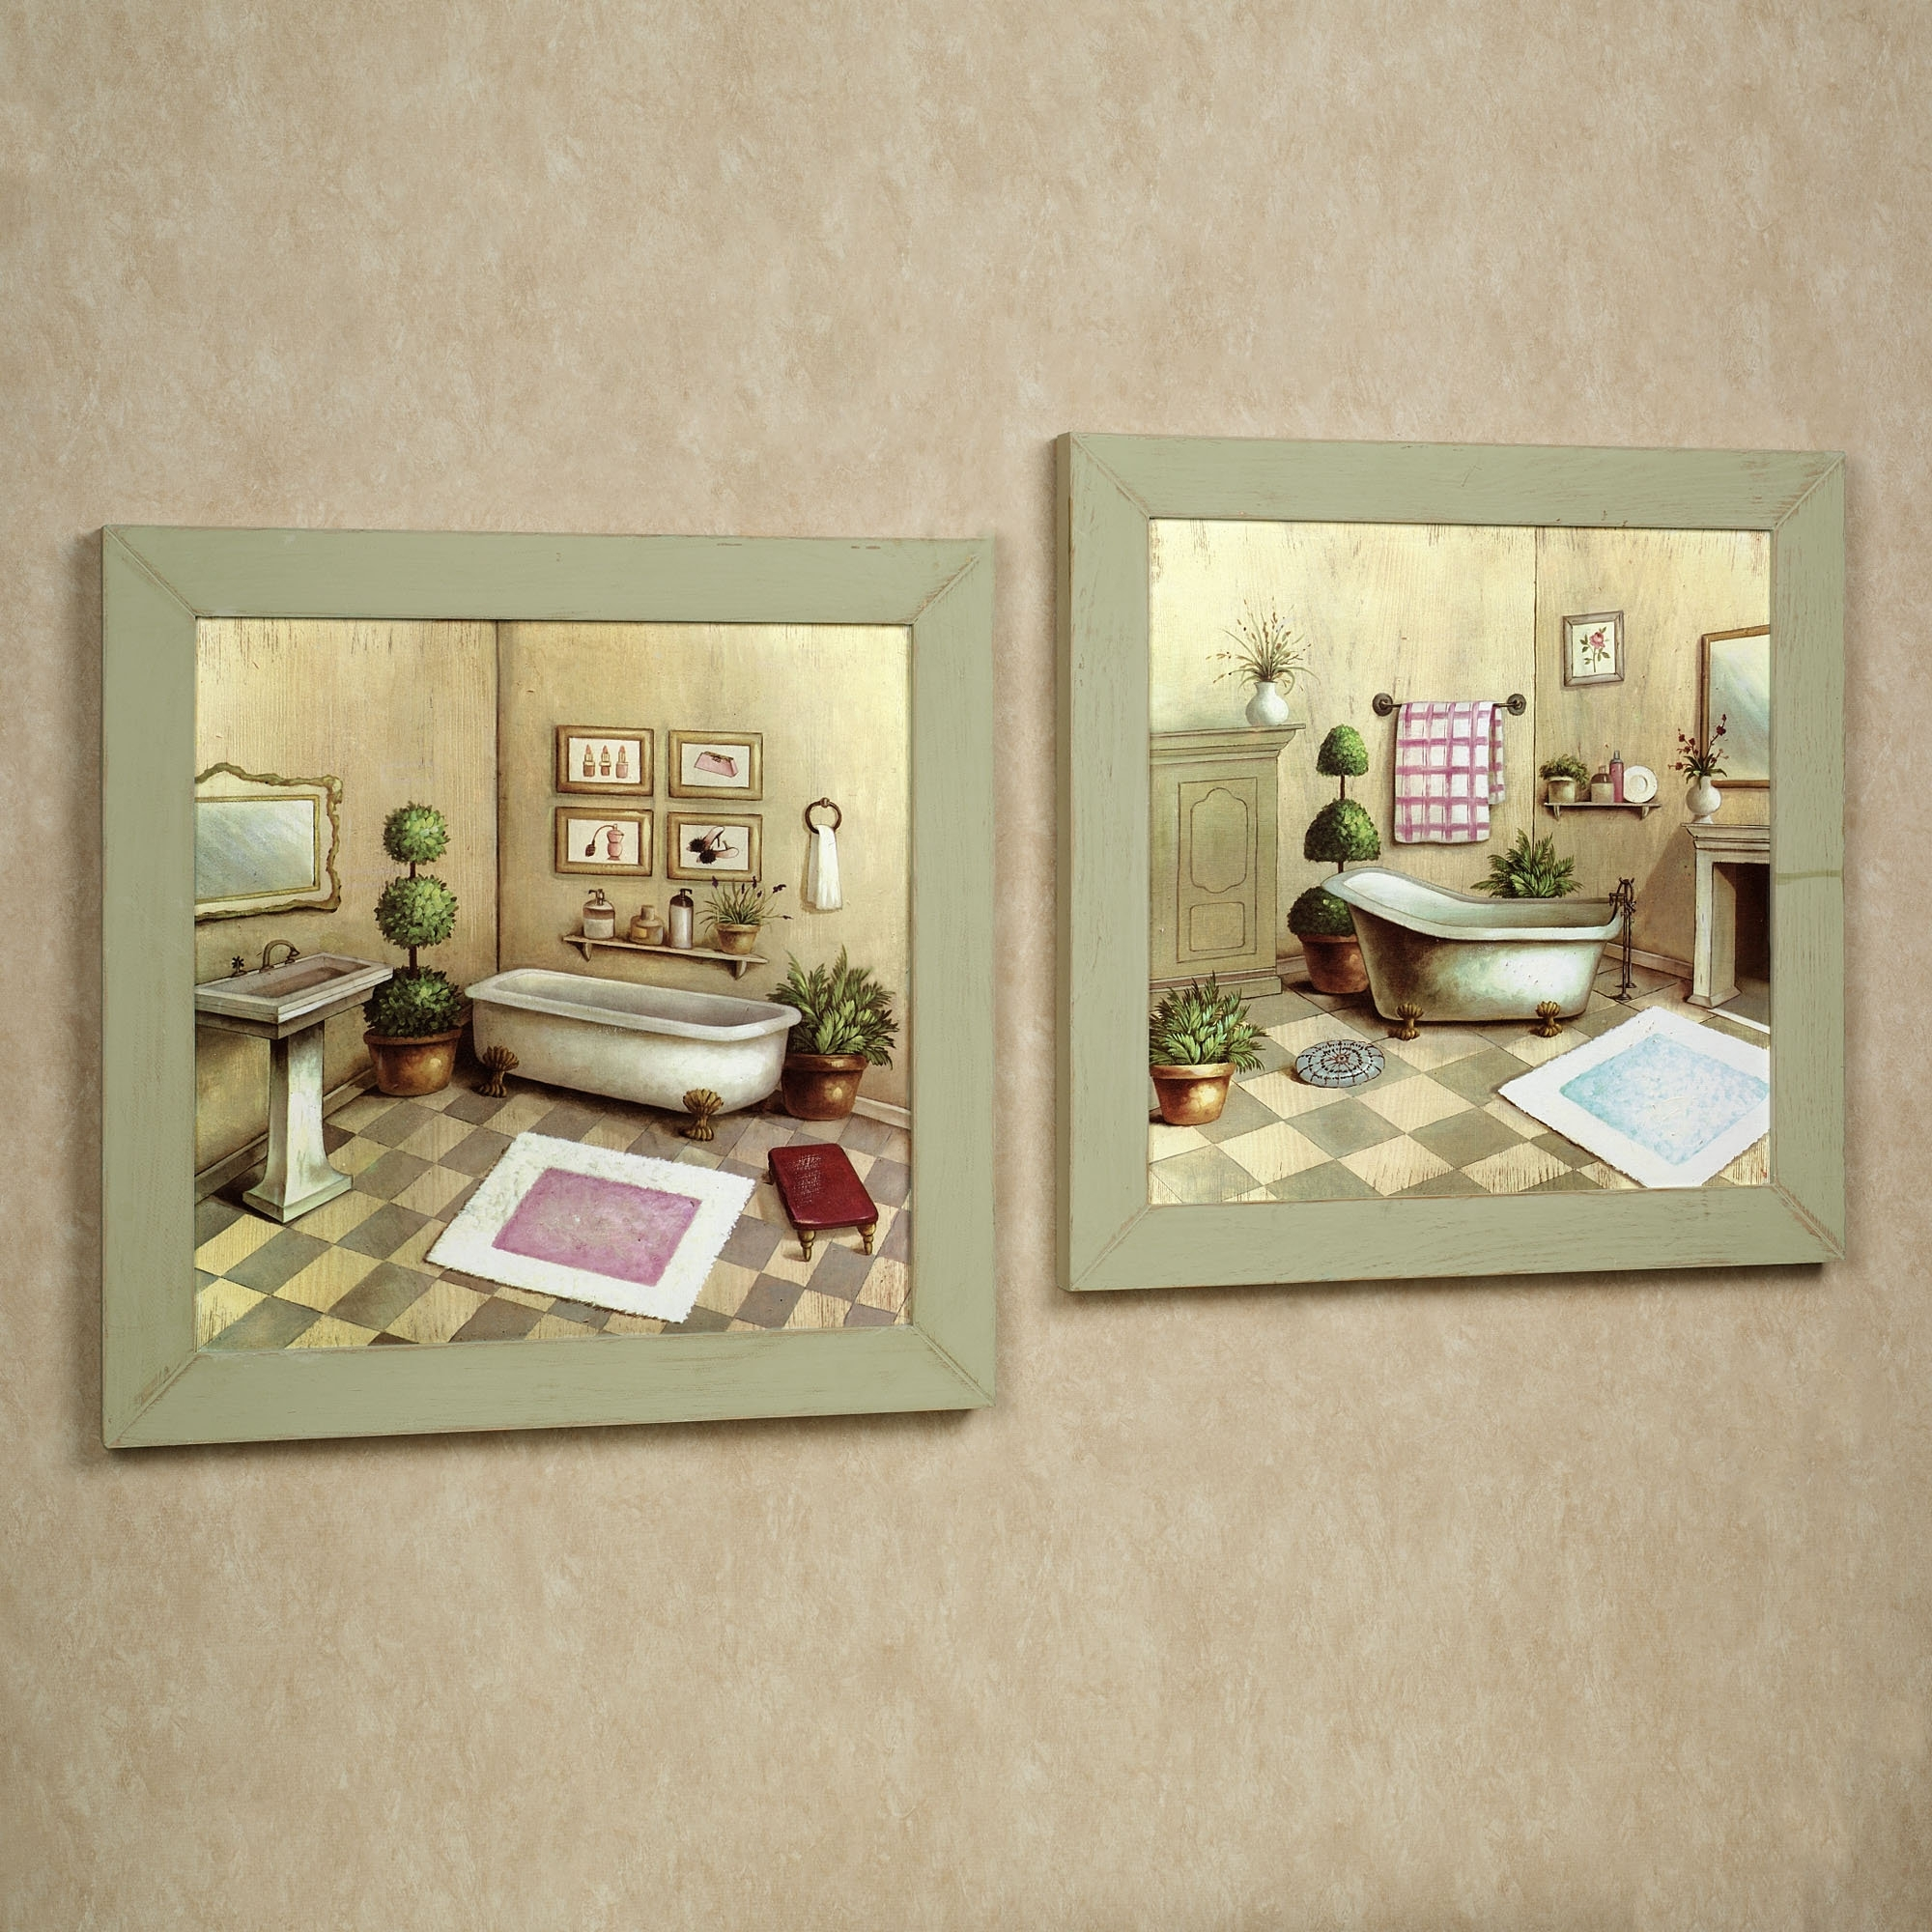 Widely Used Bathroom : Bath Wall Accents Touch Of Class And With Bathroom 30 Within Wall Art Accents (View 14 of 15)